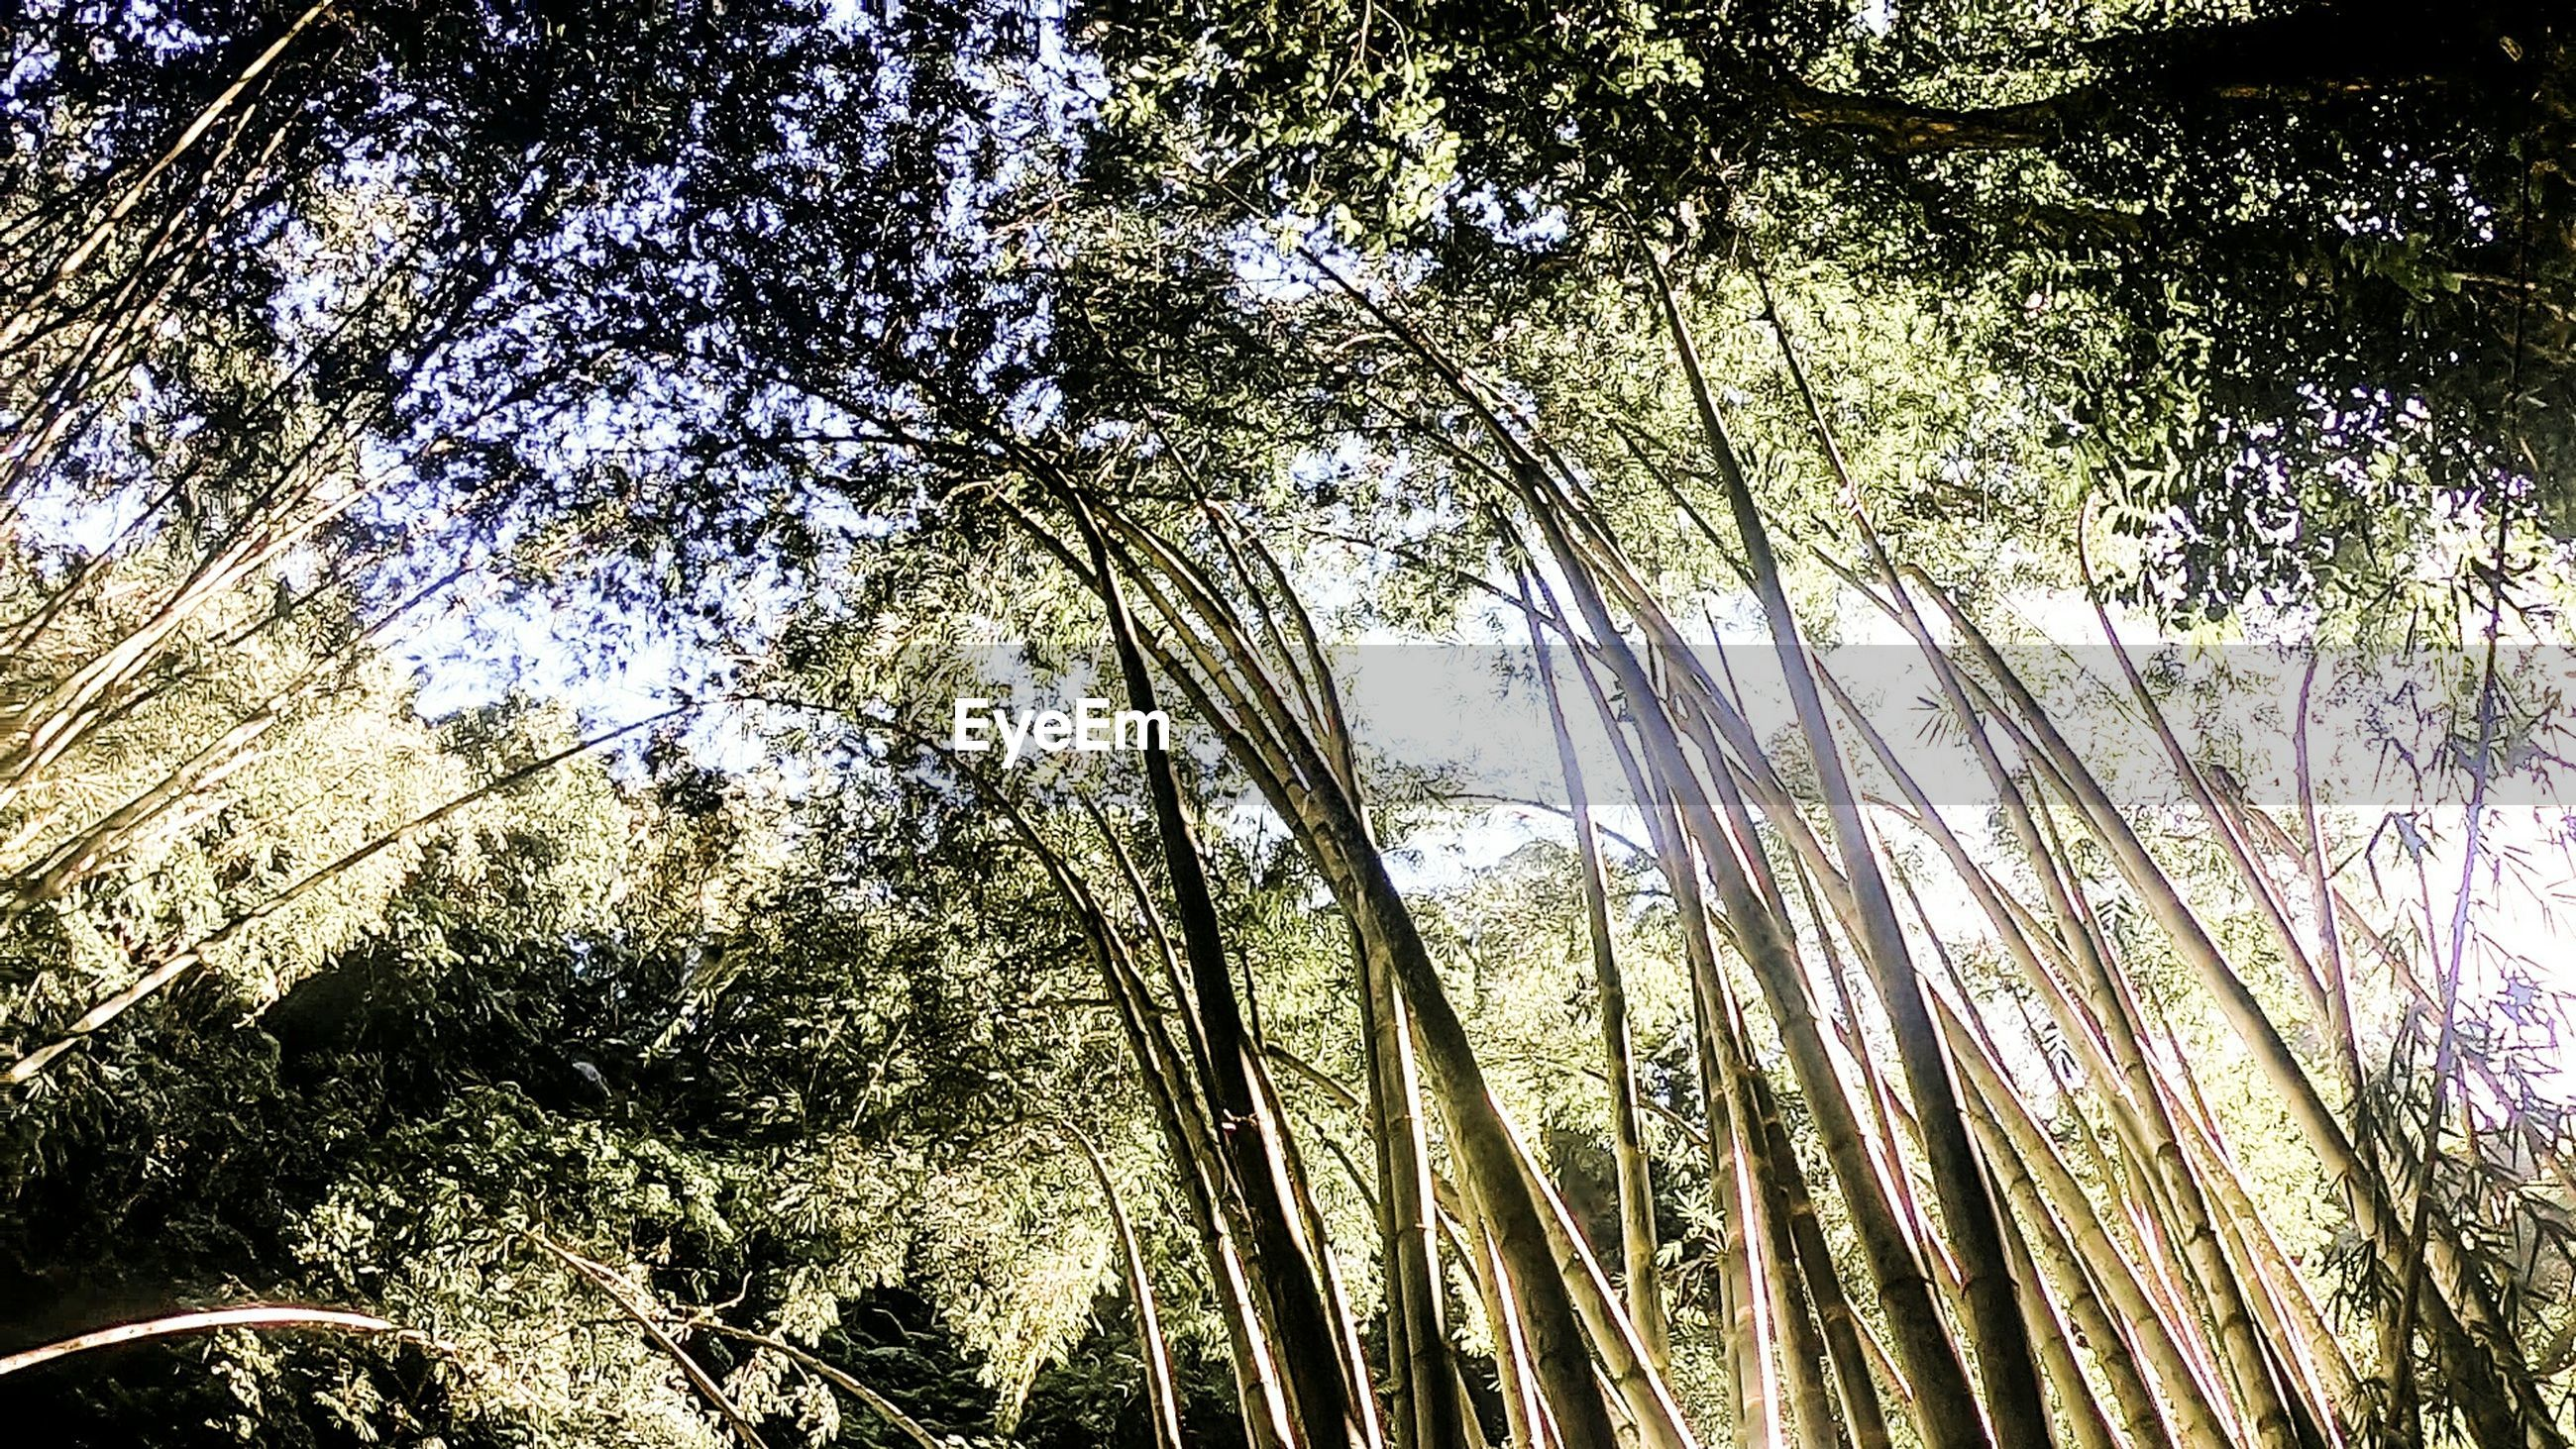 tree, plant, low angle view, tranquility, forest, land, growth, beauty in nature, tree trunk, trunk, no people, nature, day, tranquil scene, woodland, scenics - nature, sky, tall - high, tree canopy, non-urban scene, outdoors, bamboo - plant, directly below, coniferous tree, rainforest